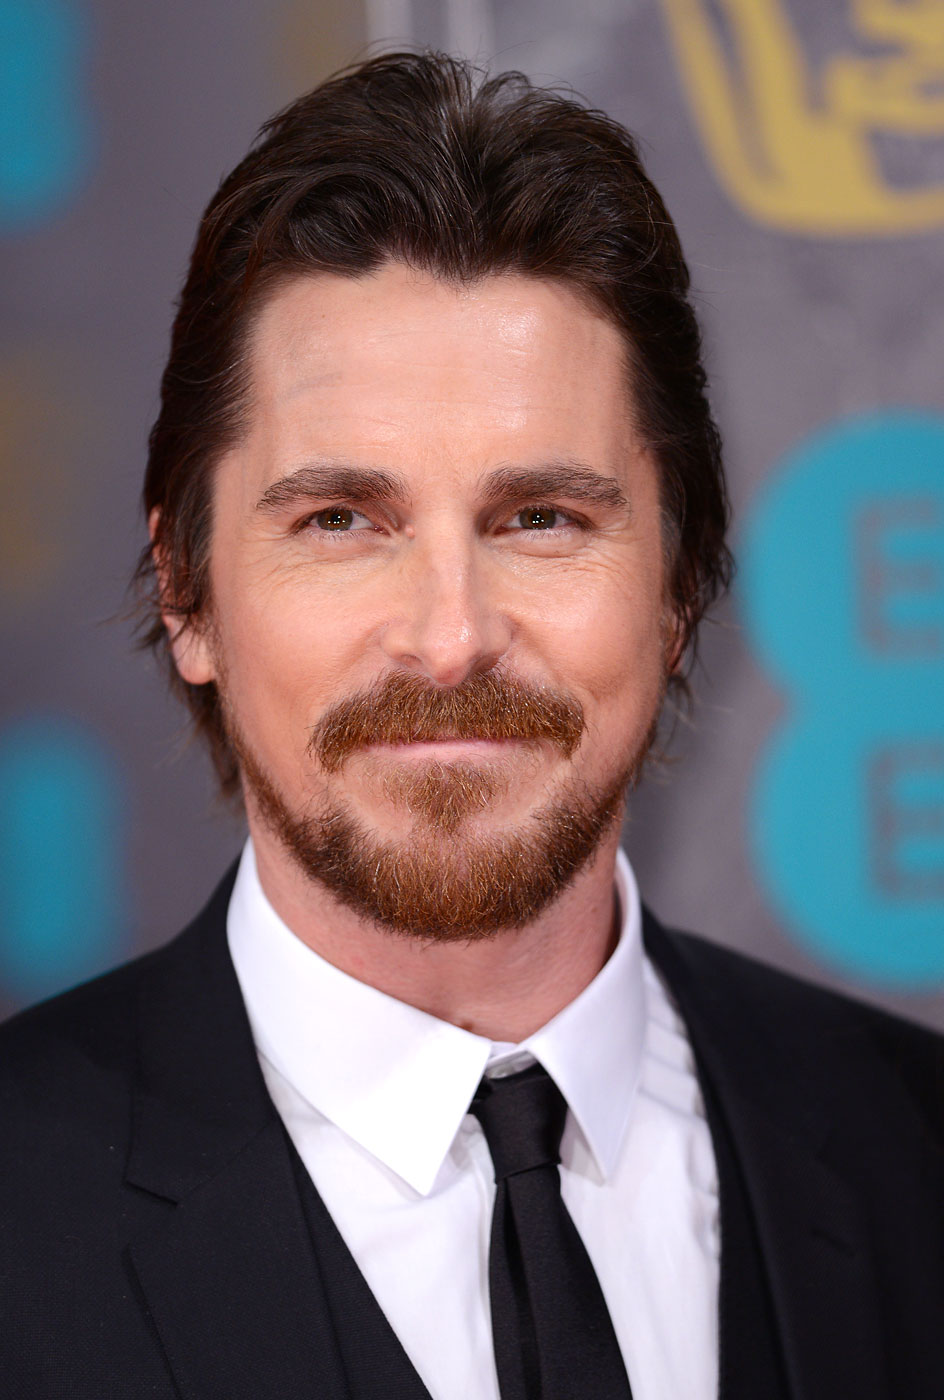 Christian Bale attends the EE British Academy Film Awards 2014 at The Royal Opera House on Feb. 16, 2014 in London, England